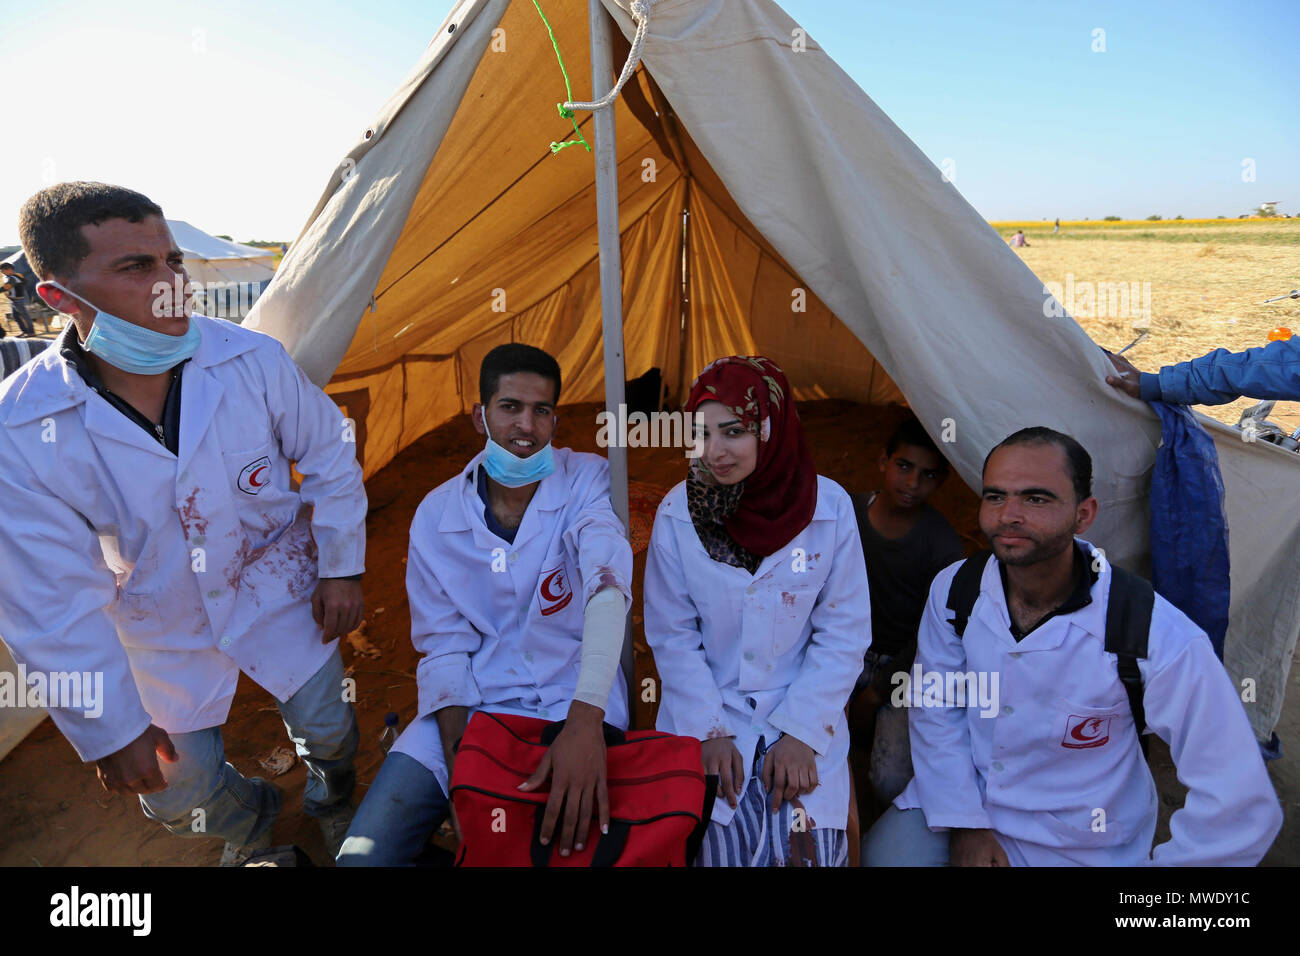 Khan Younis, Gaza Strip, Palestinian Territory. 1st Apr, 2018. (FILES) This file photo taken on April 1, 2018. shows Palestinian medical Razan al-Najjar and her comrades sit next to medical tent, who was killed during a protest at the Israel-Gaza border, in Khan Younis in the southern Gaza Strip, on June 1, 2018 Credit: Ashraf Amra/APA Images/ZUMA Wire/Alamy Live News - Stock Image